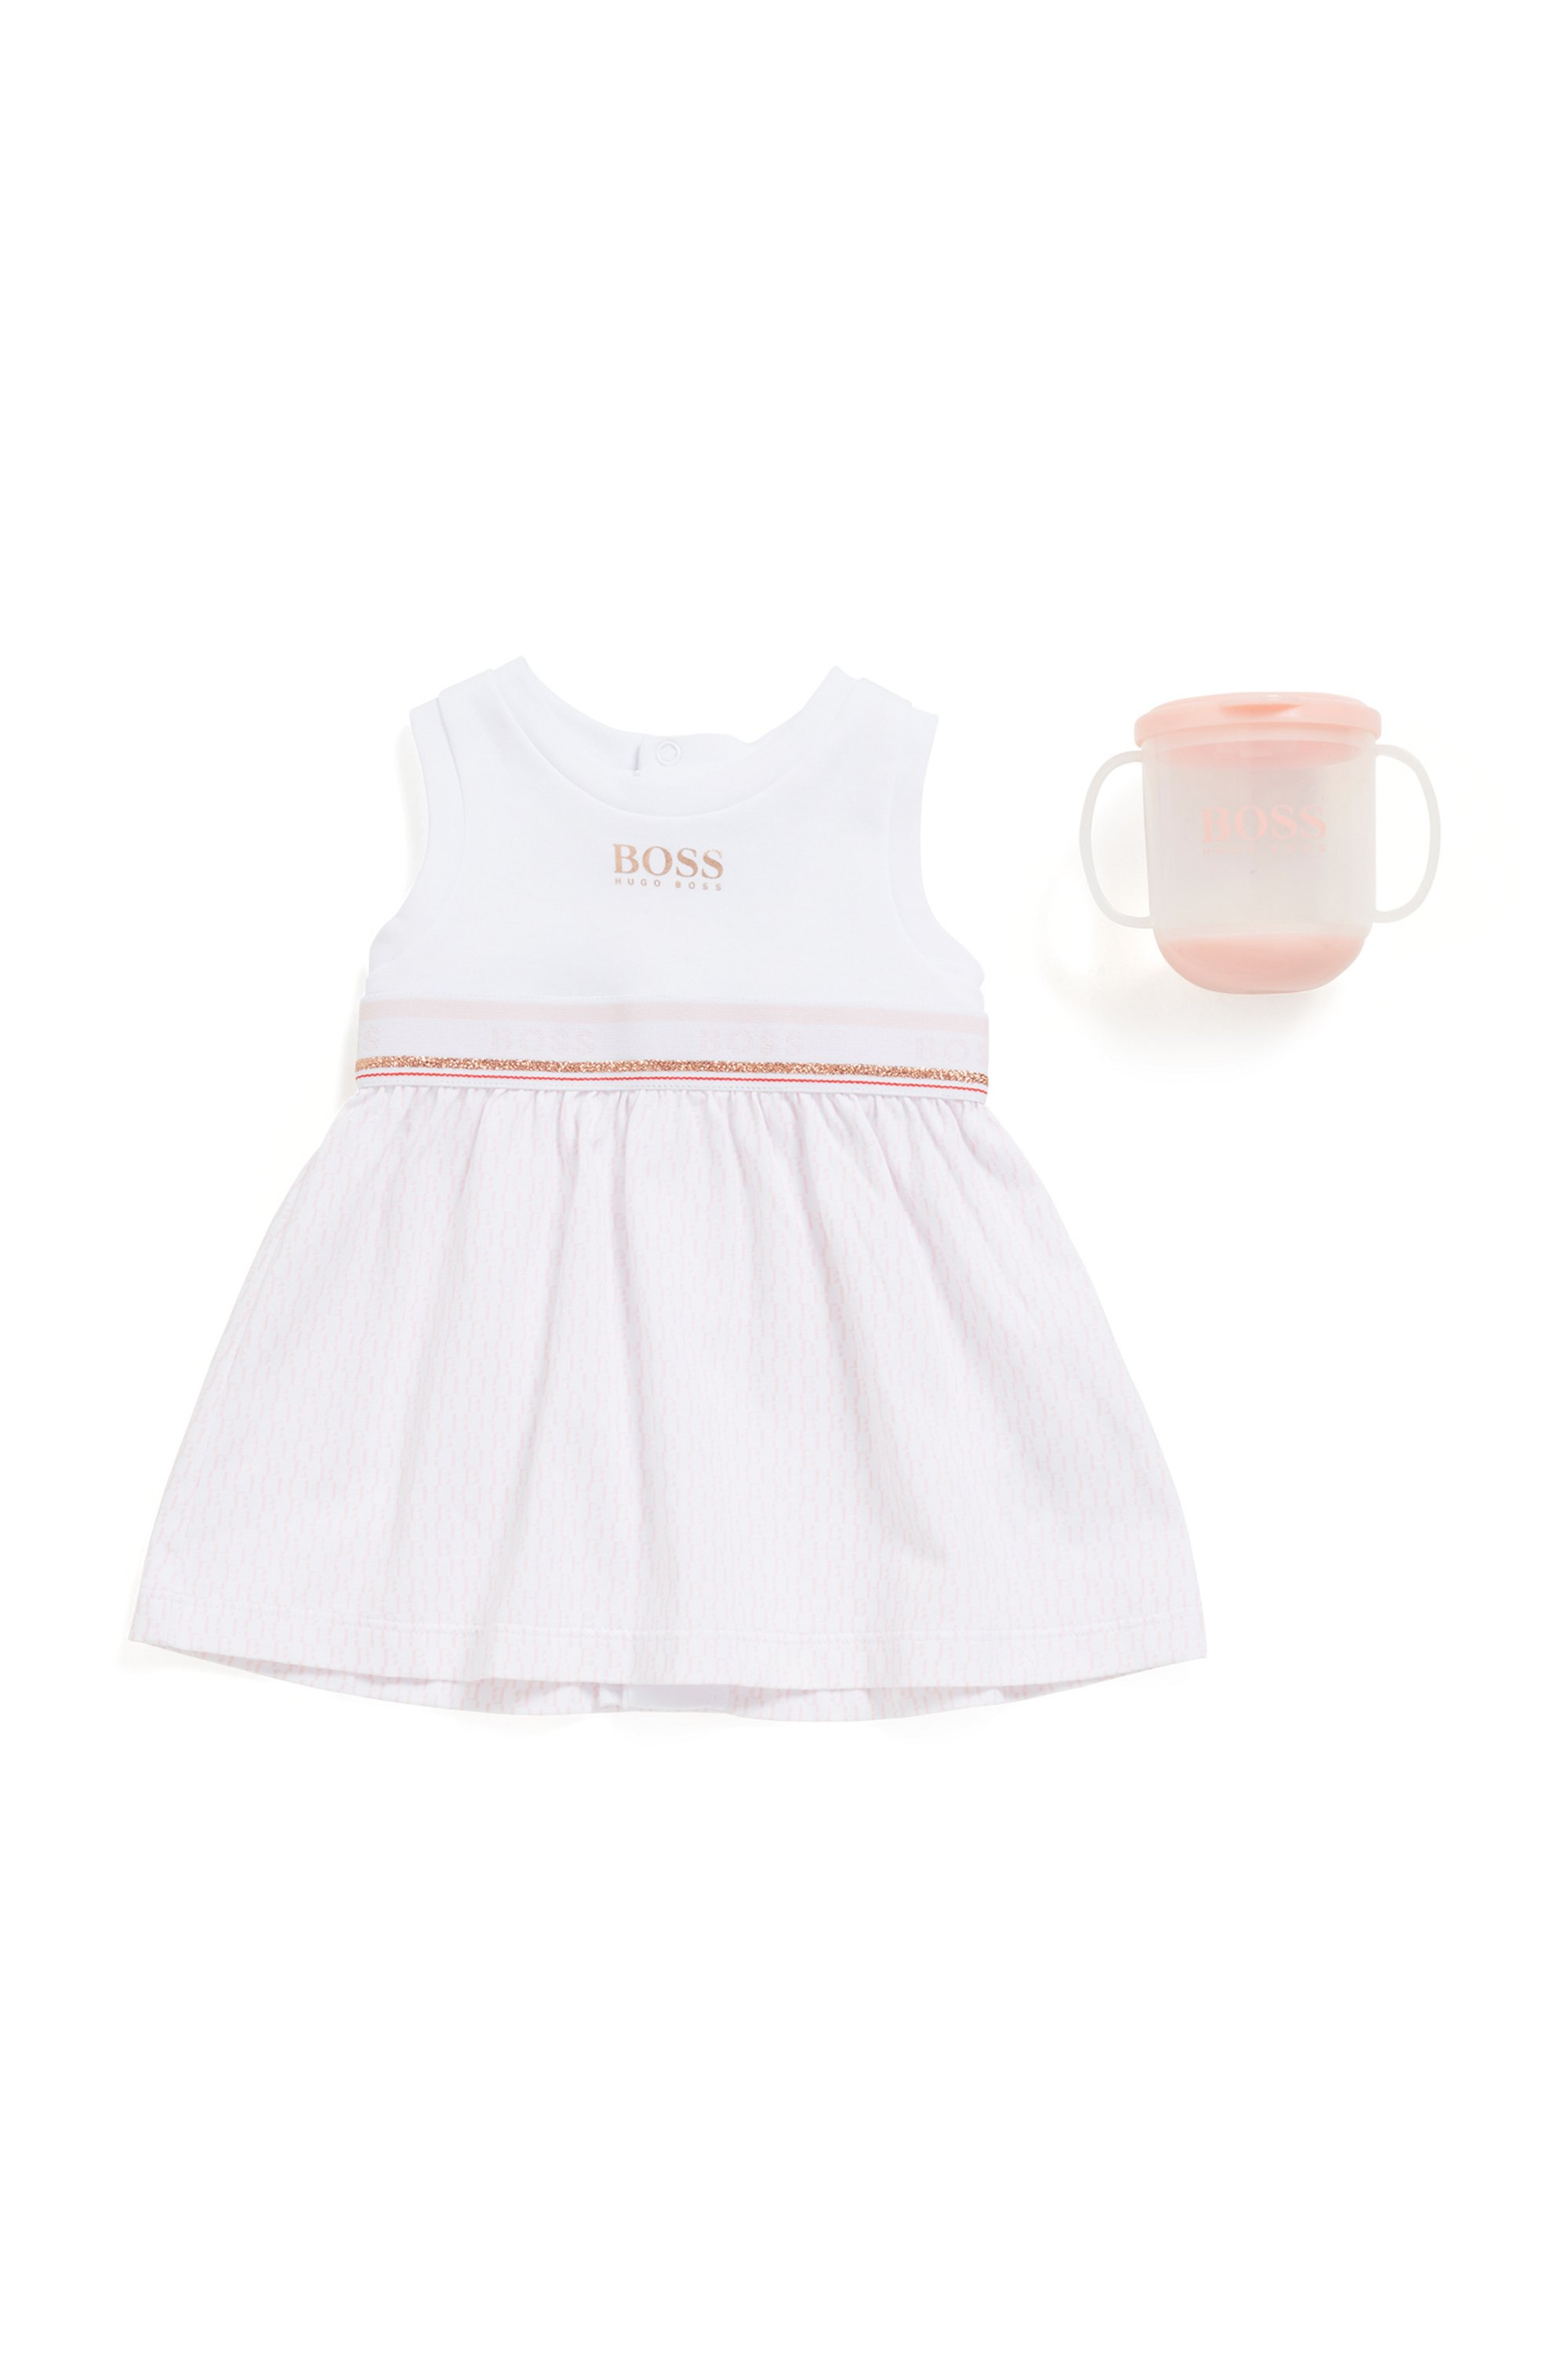 Baby cup in BPA-free plastic with printed logo